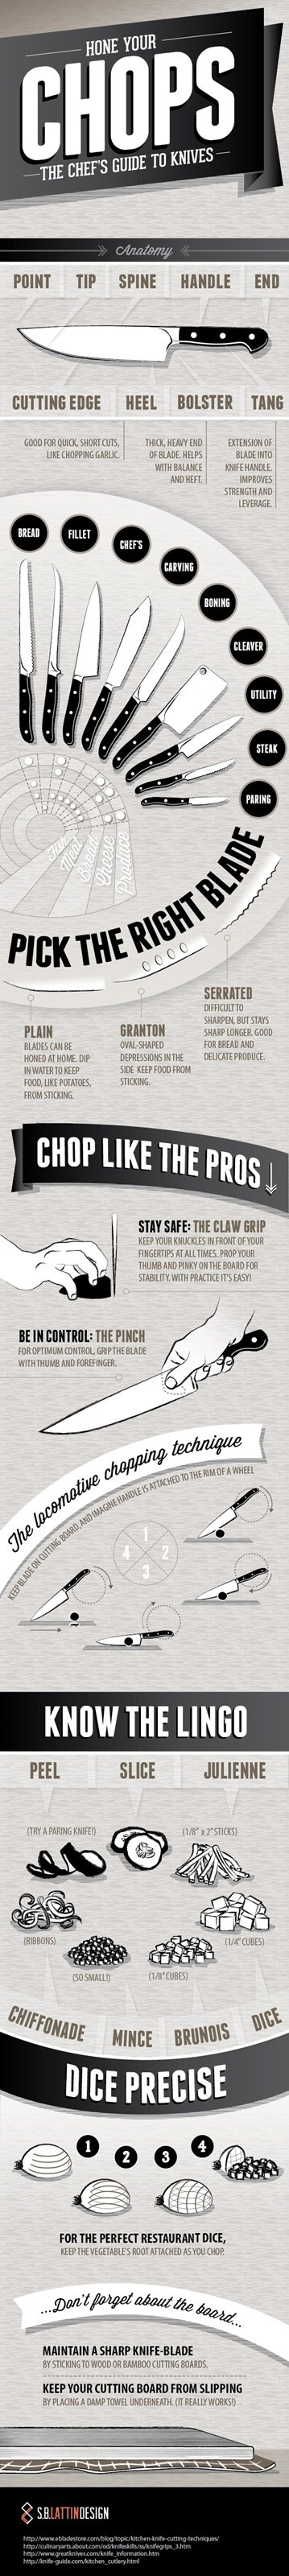 how-to guide,knives,safety